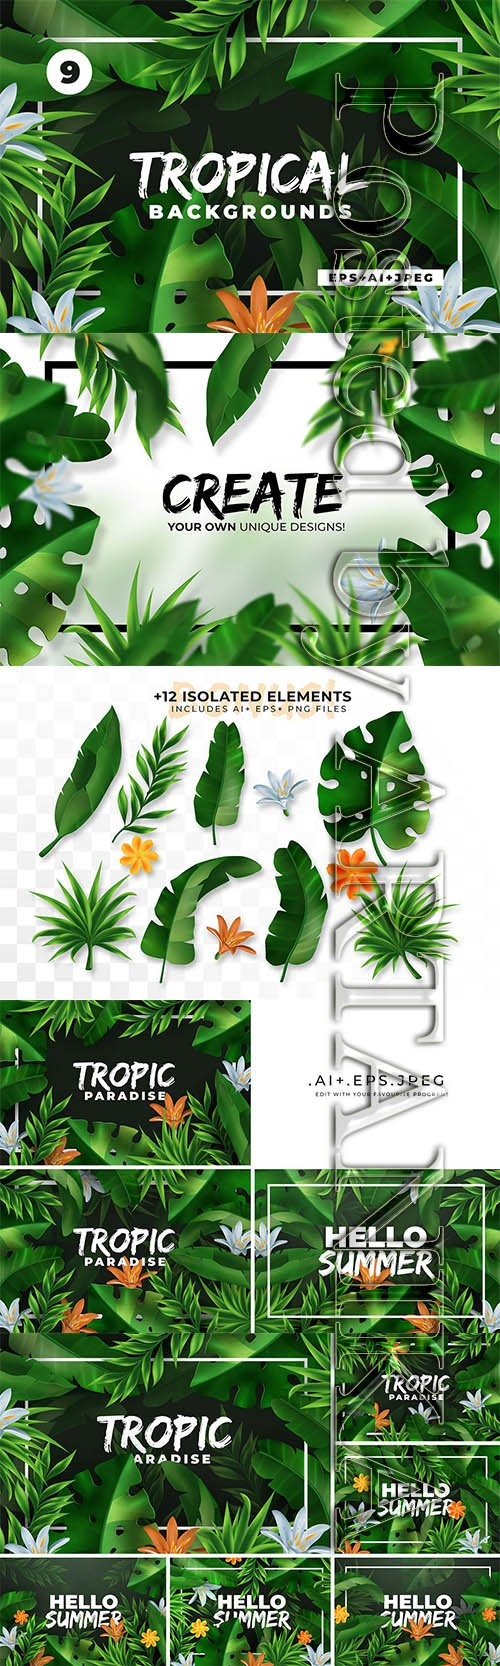 Vector Tropical Elements & Backgrounds Collection